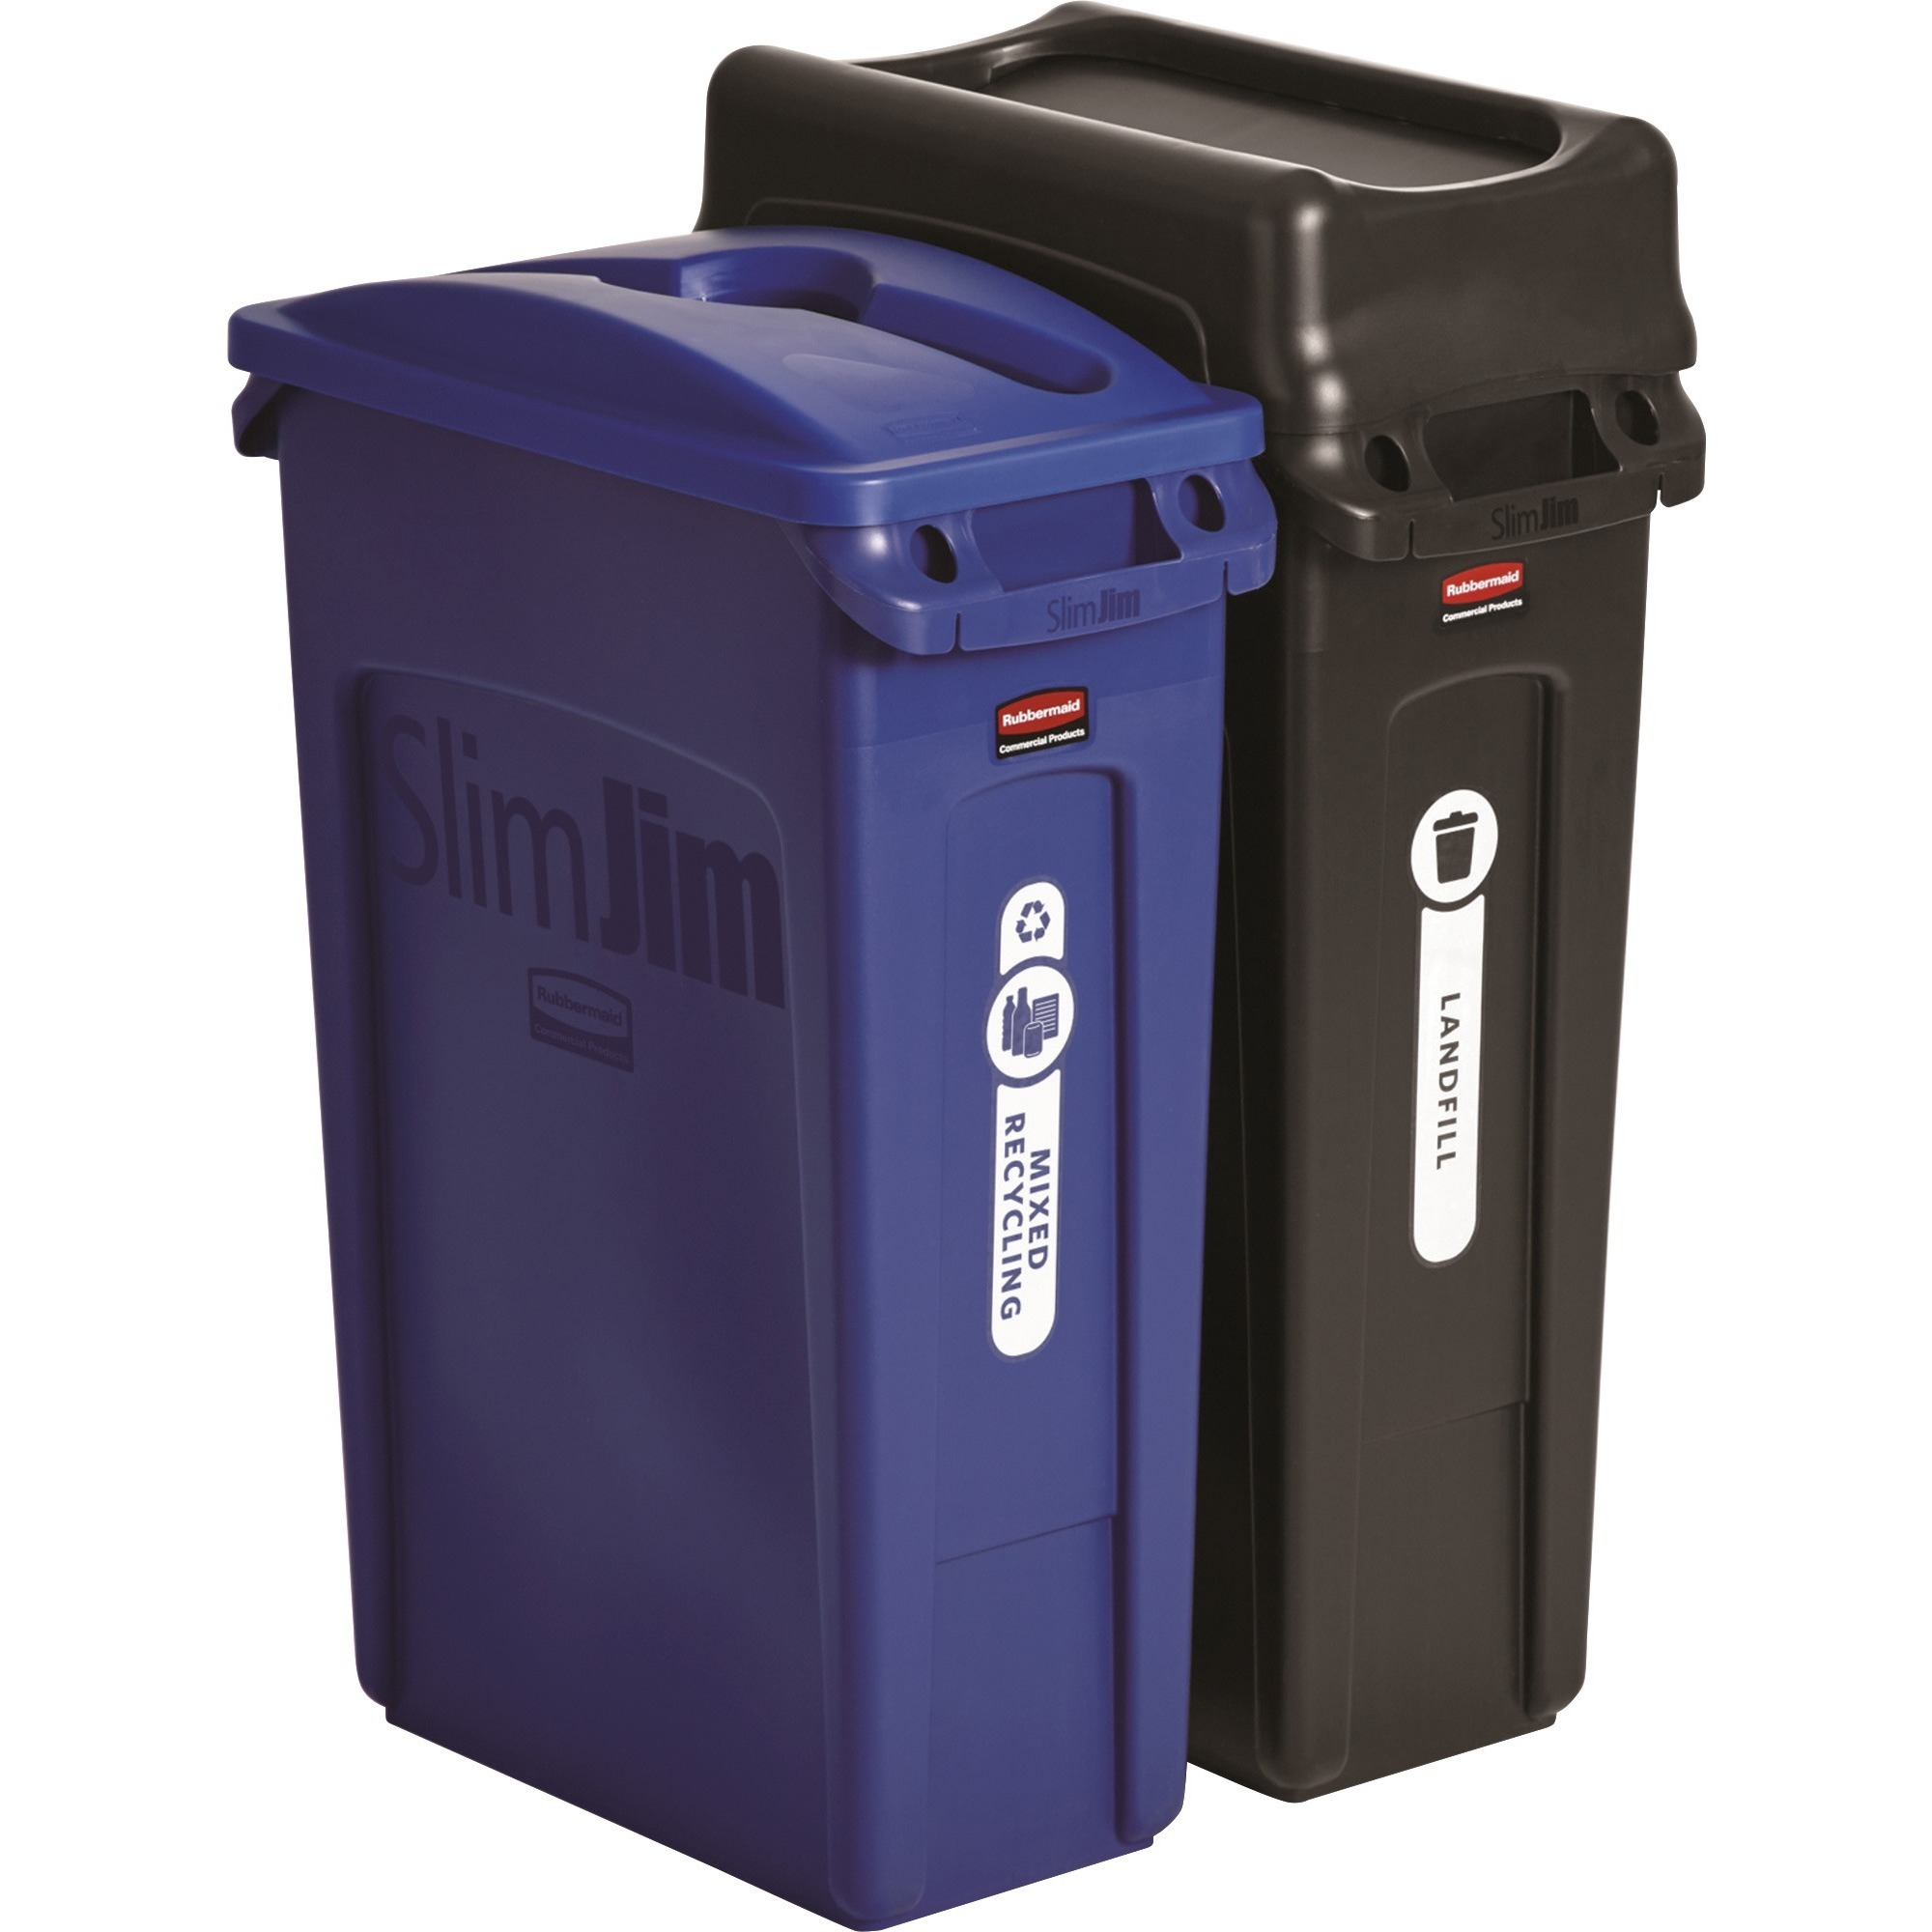 Rubbermaid Commercial, RCP1998896, Slim Jim 2-container Recycling Set, 1, Blue,Black